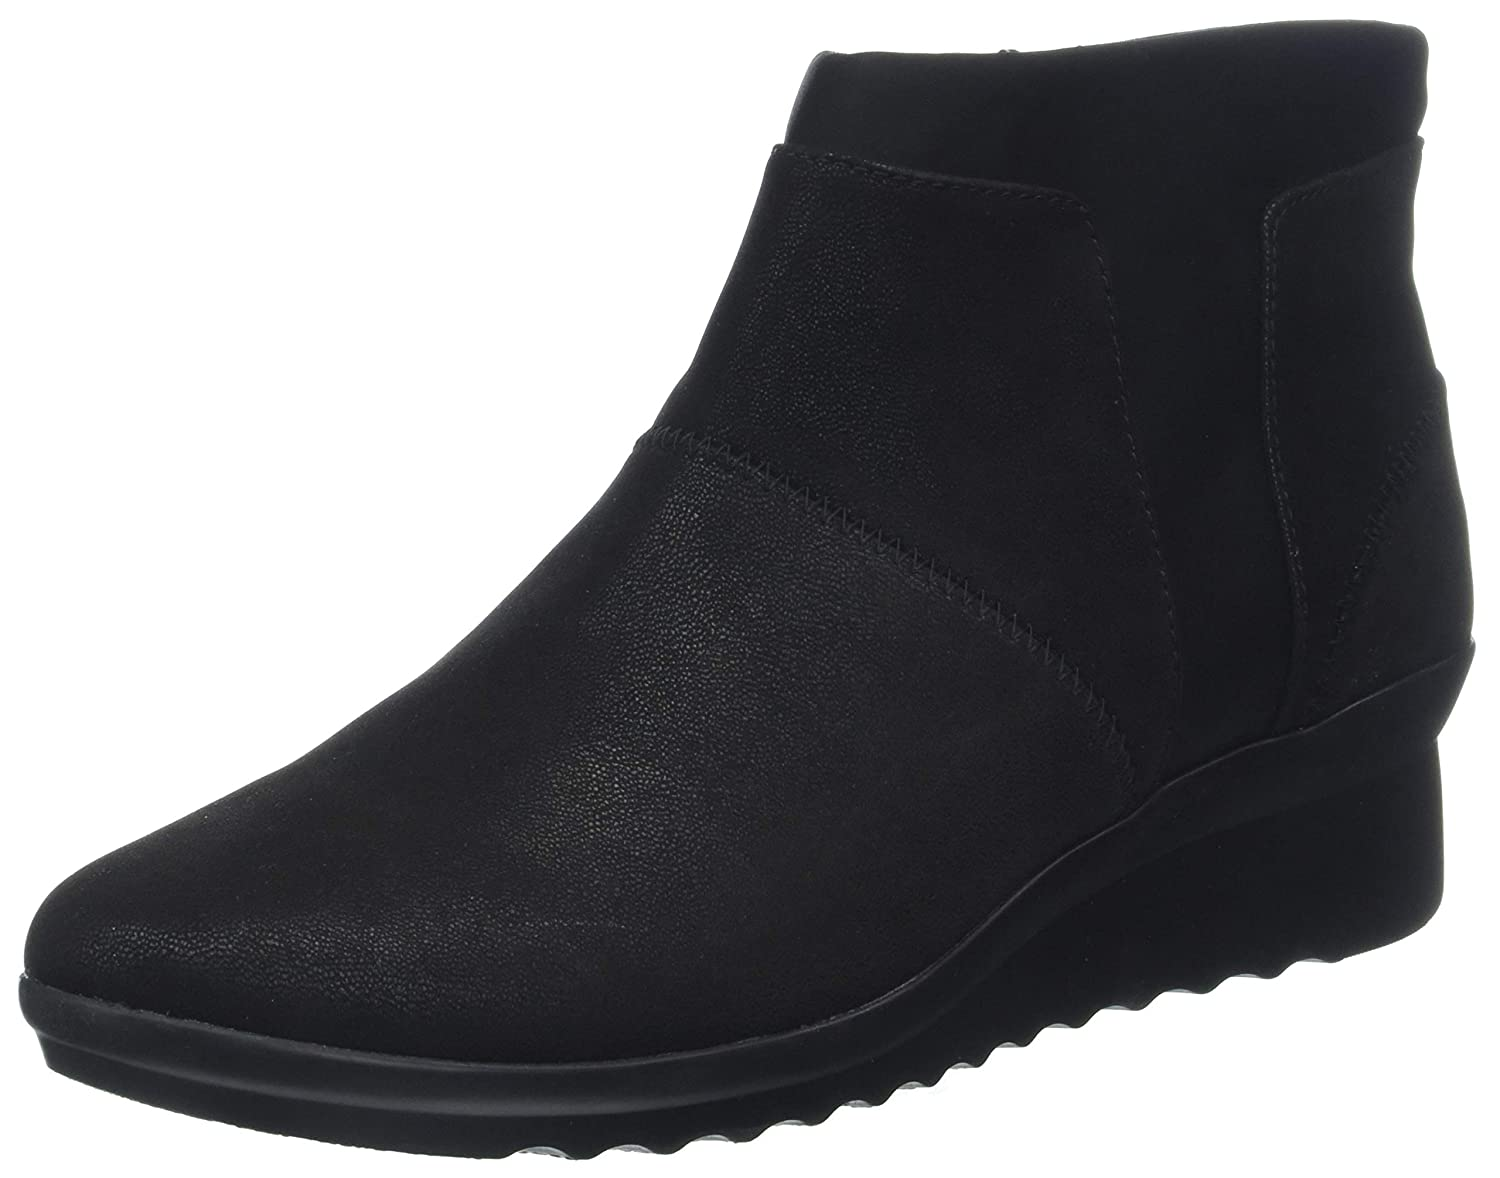 0f91367467b0 Clarks Women s Caddell Sloane Slouch Boots  Amazon.co.uk  Shoes   Bags